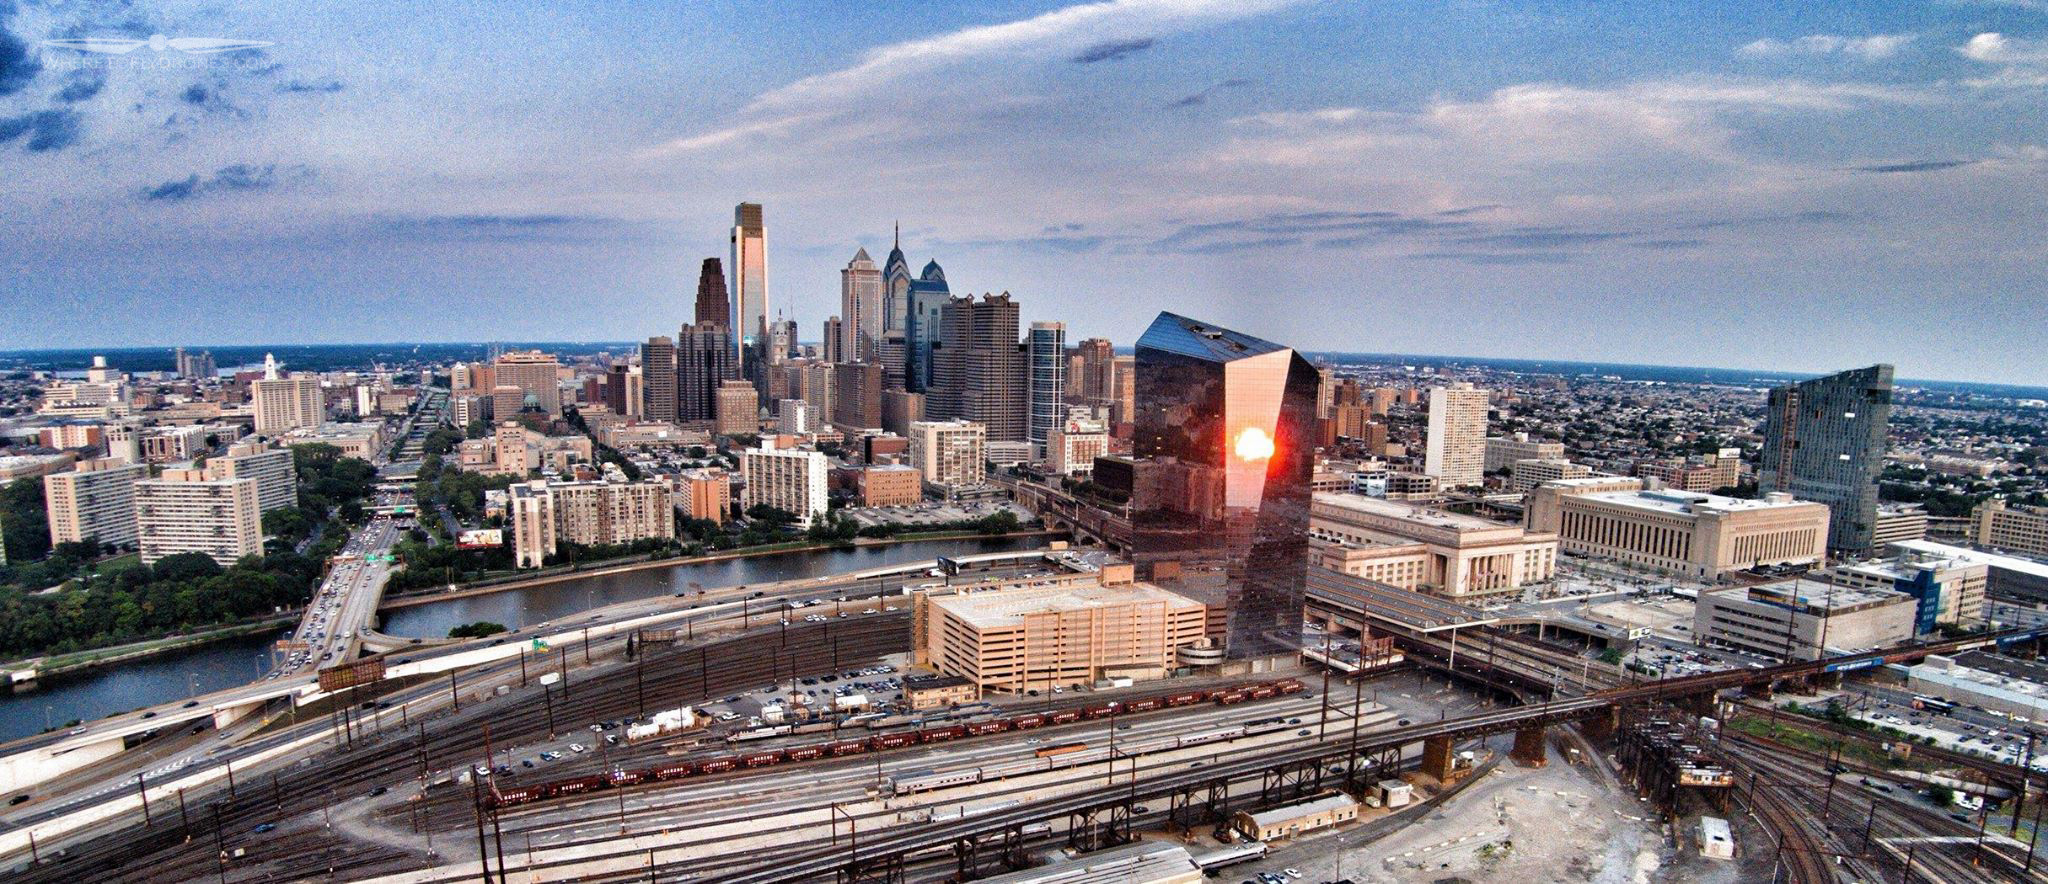 Phila Sunset Reflection July 2014-2